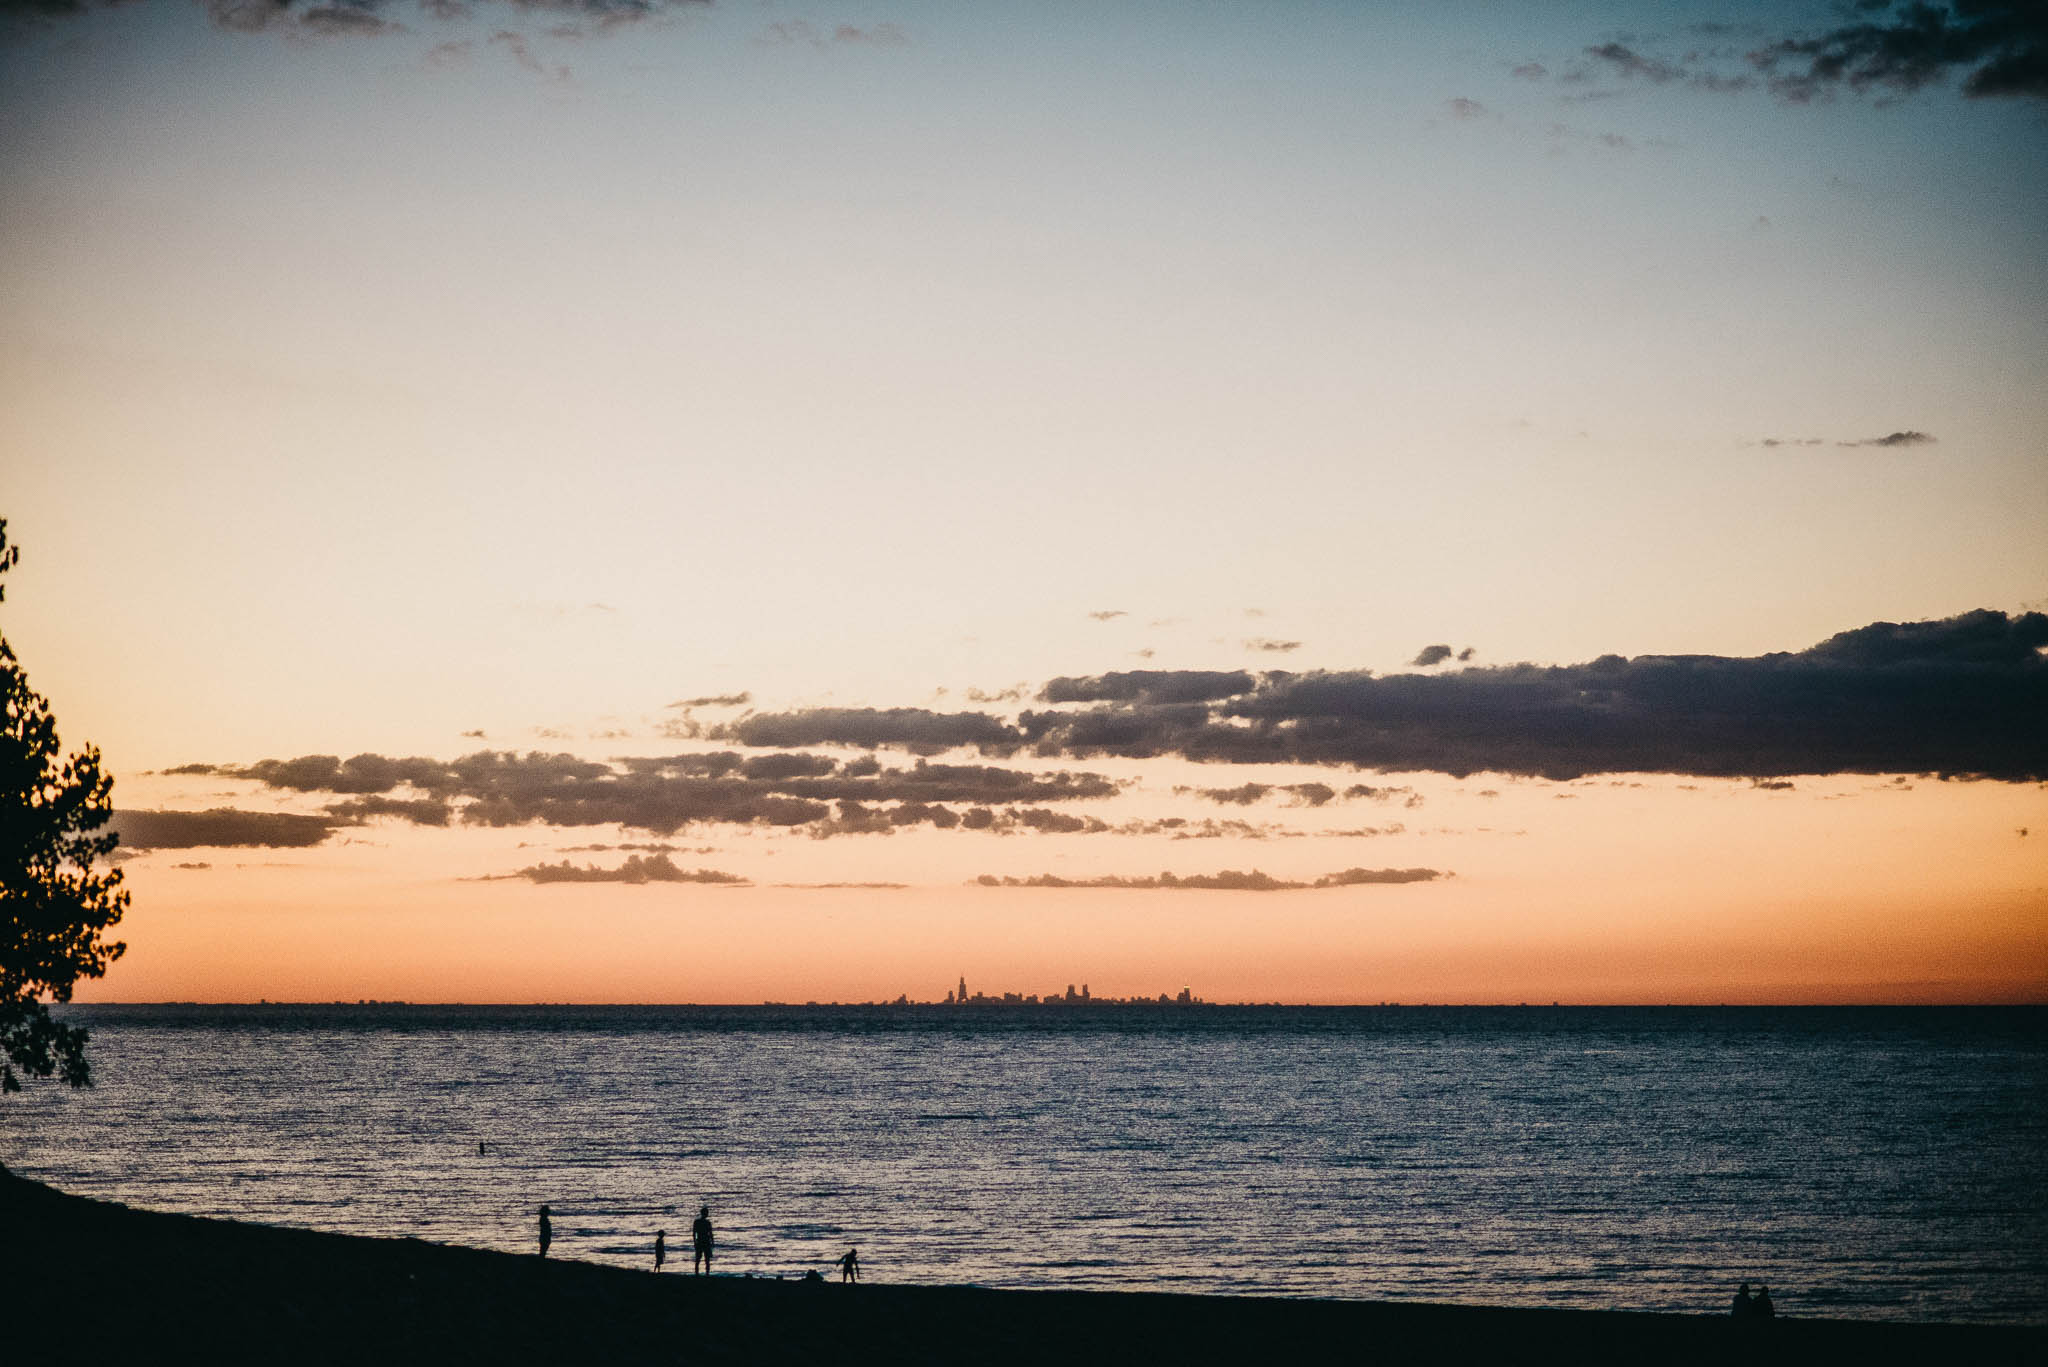 The Chicago city skyline at sunset seen from the southern shores of Lake Michigan